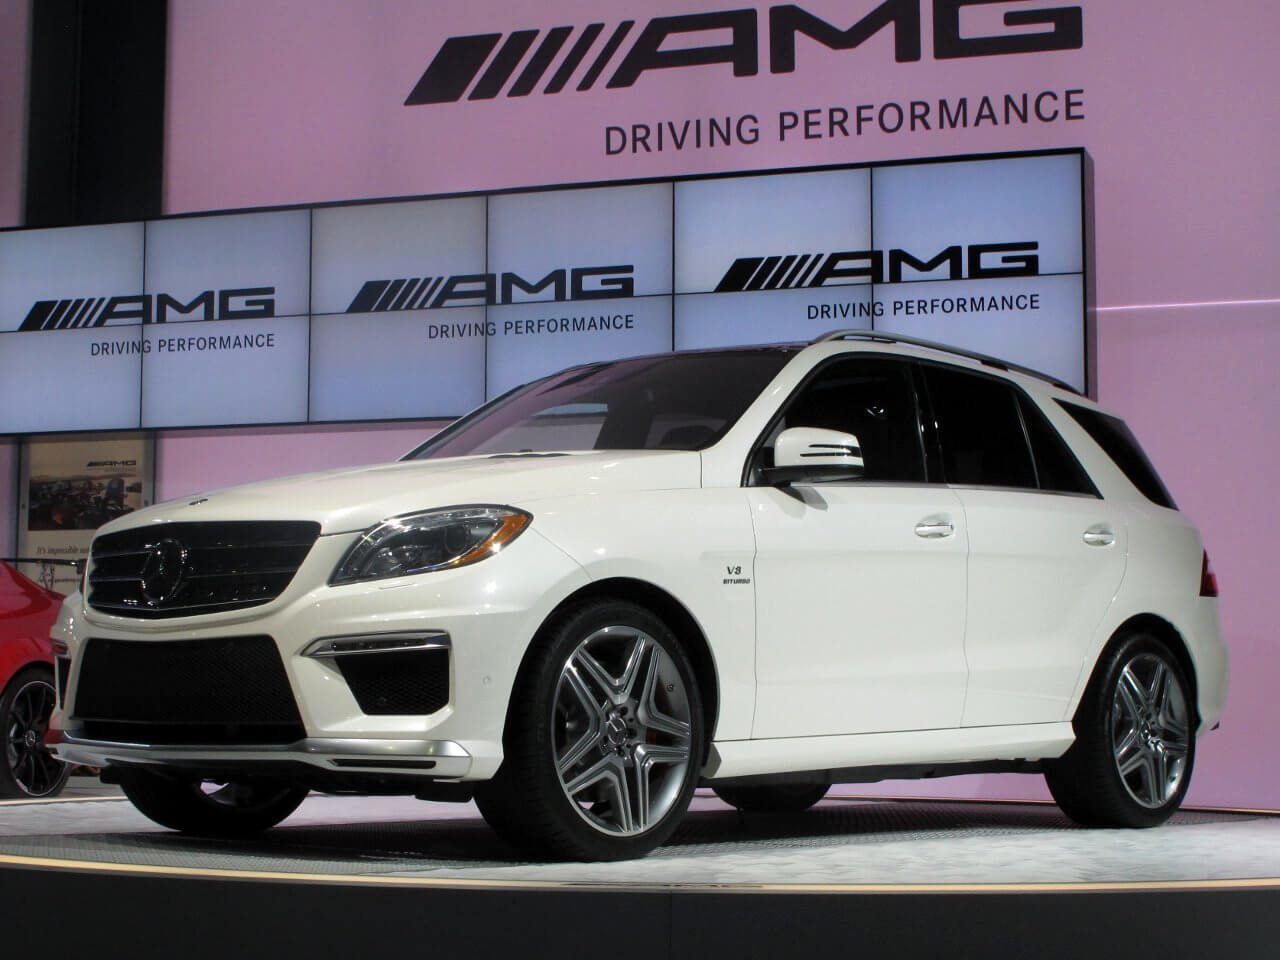 Mercedes Benz Ml63 Amg 2017 2016 Price In India Images Specs Mileage Autoportal